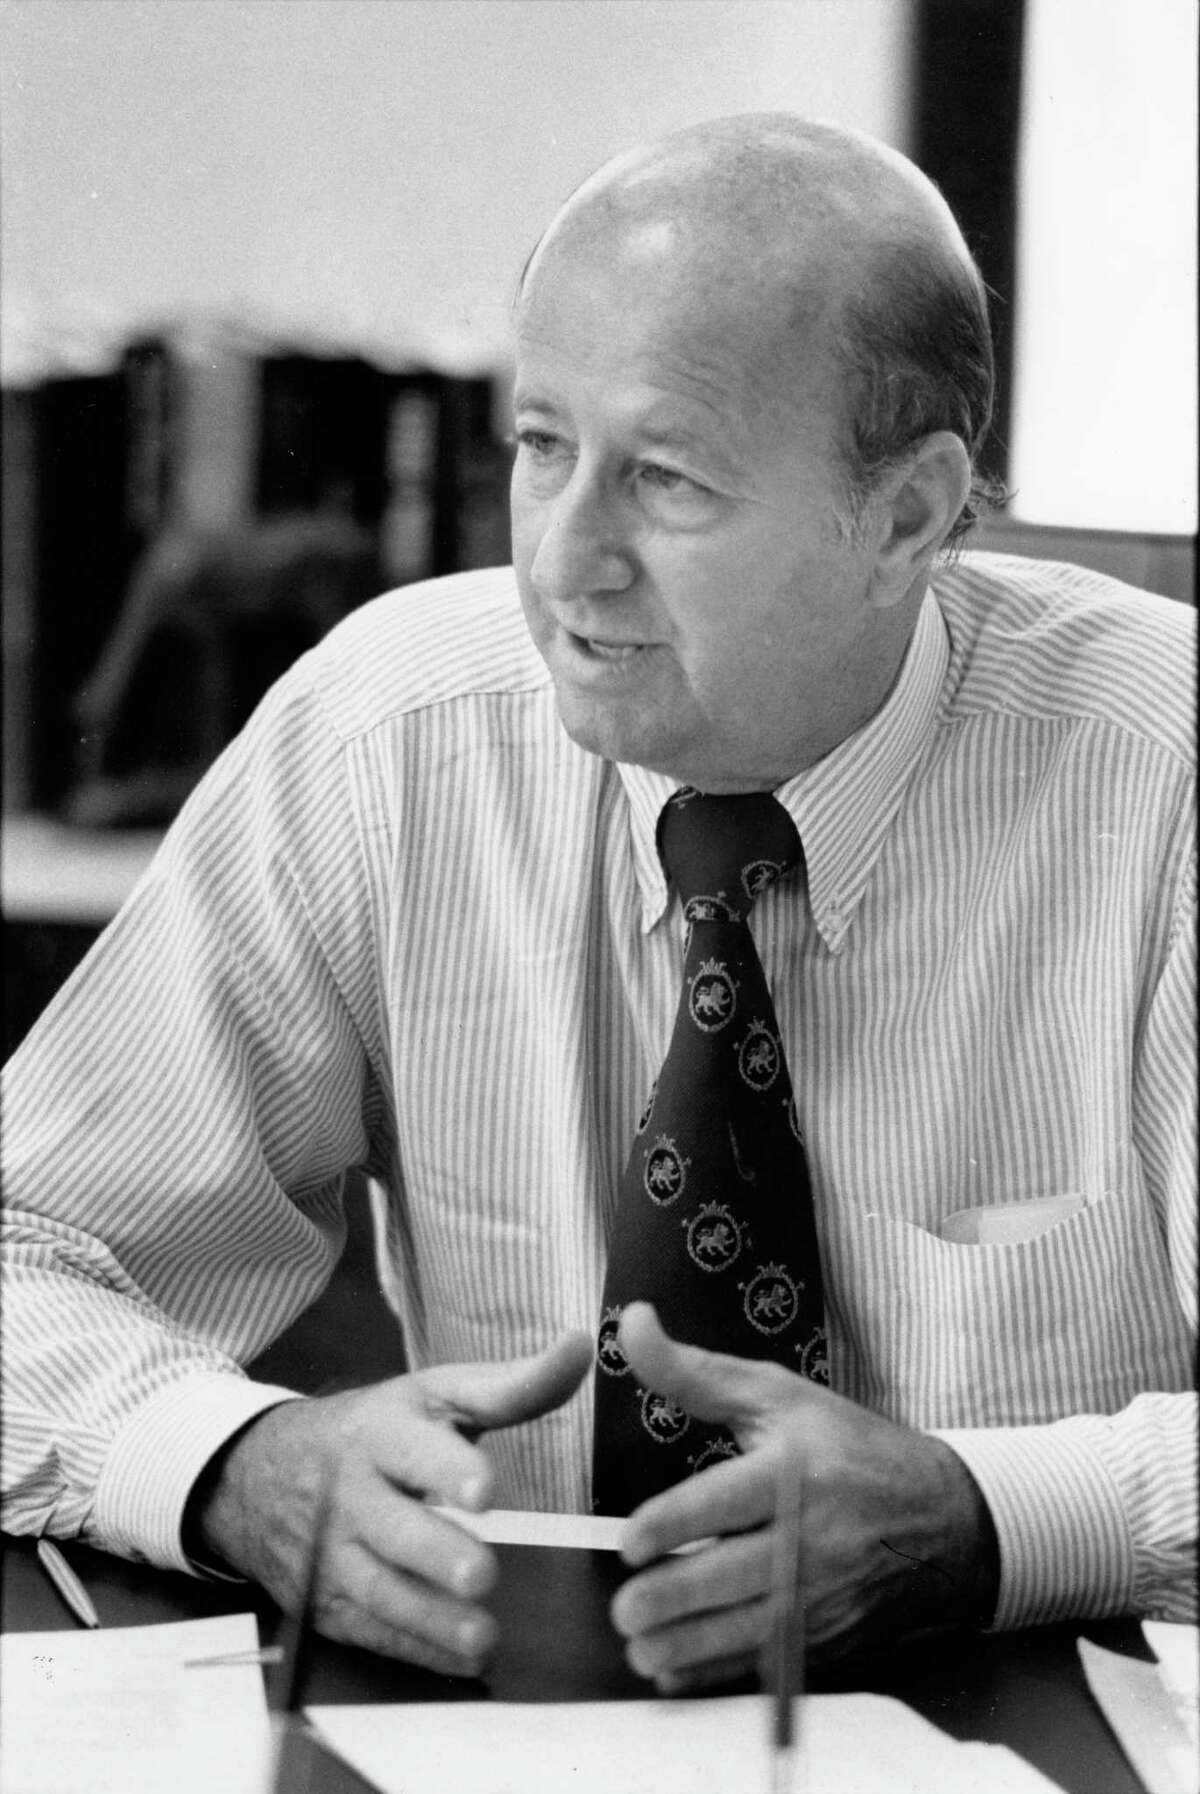 11/1979 - Independent oilman and real estate developer George P. Mitchell in his office